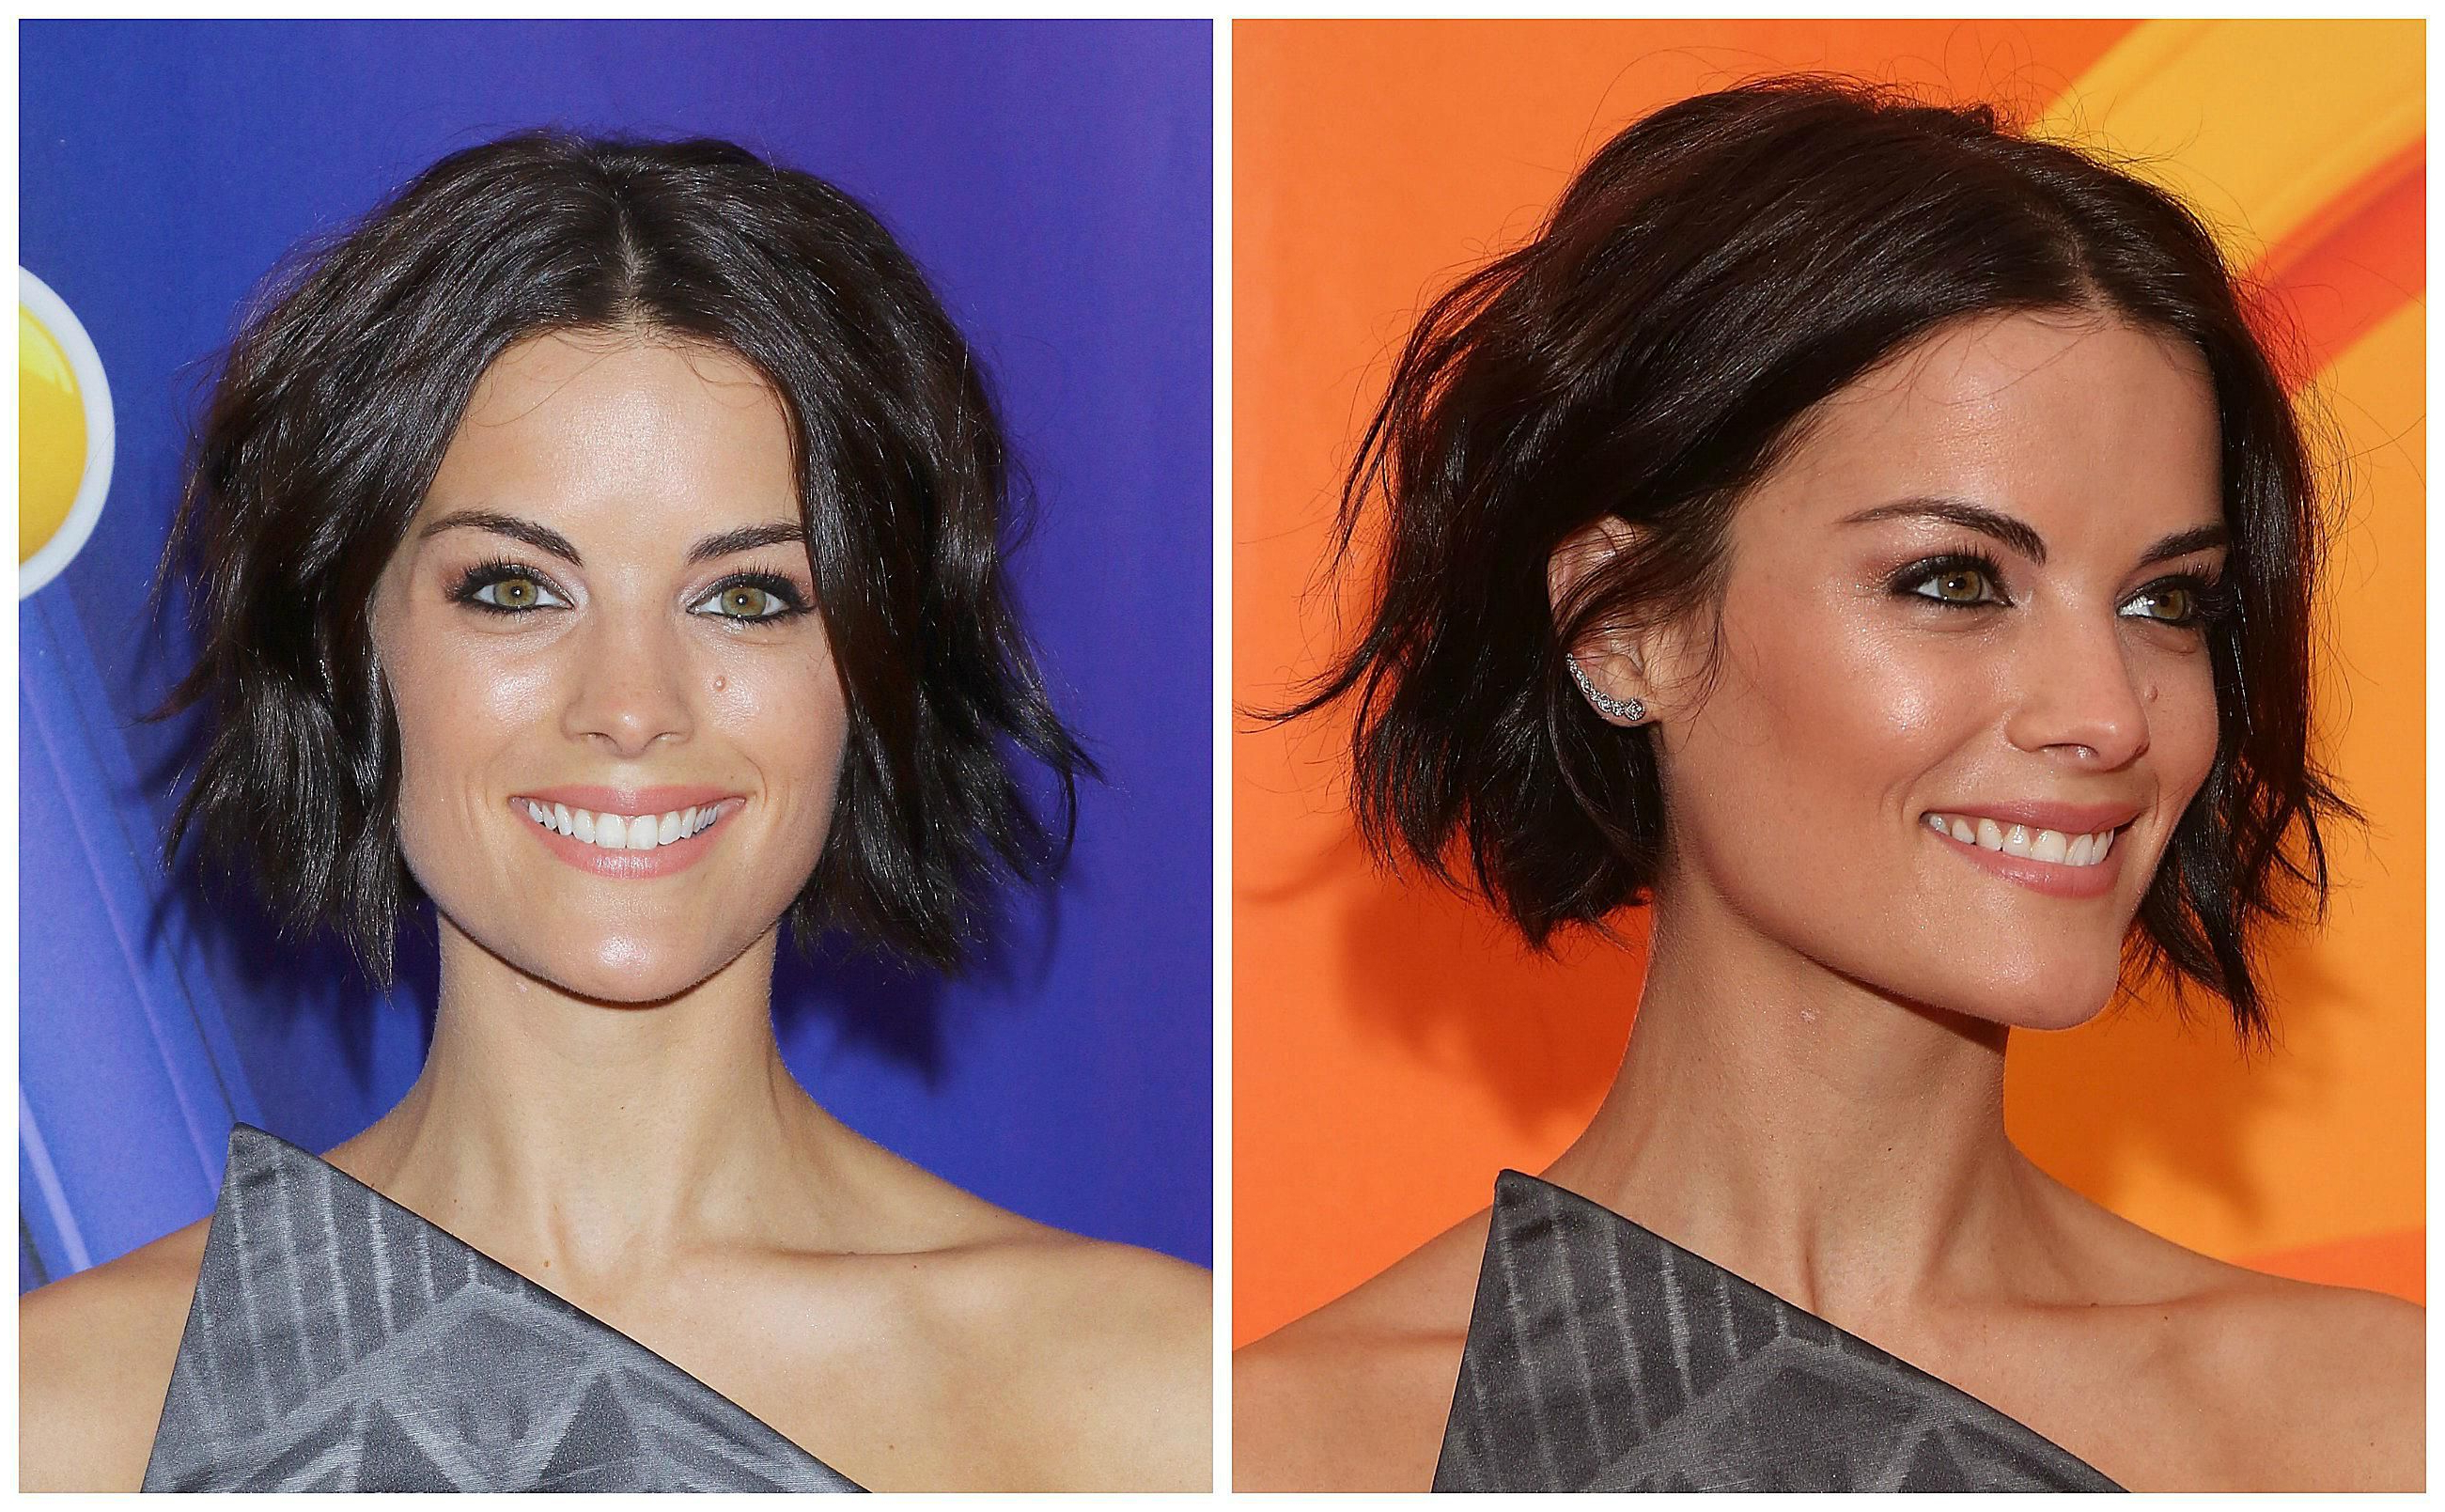 How To Tell If You'd Look Good In Short Hair With Regard To Short Hairstyles For High Forehead (View 10 of 25)